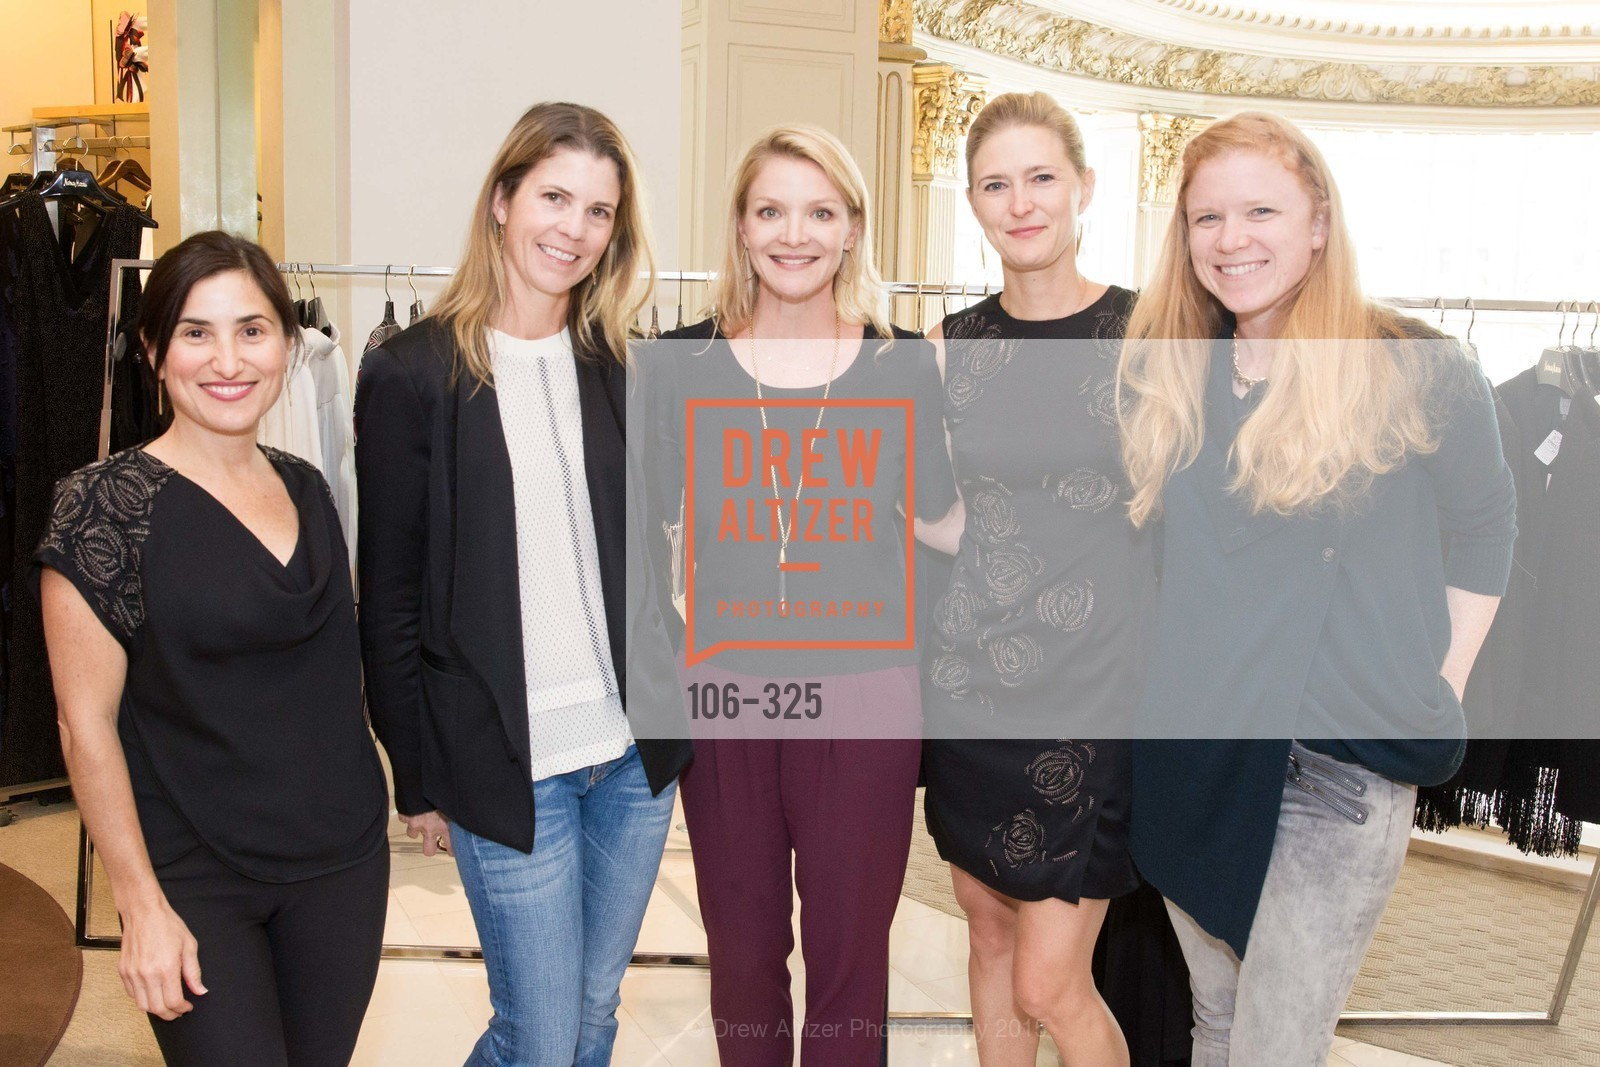 Zem Joaquin, Natasha Bradley, Kristy Caylor, Alicia Engstrom, Robyn Beavers, Maiyet Reception at Neiman Marcus, Neiman Marcus, September 29th, 2015,Drew Altizer, Drew Altizer Photography, full-service agency, private events, San Francisco photographer, photographer california